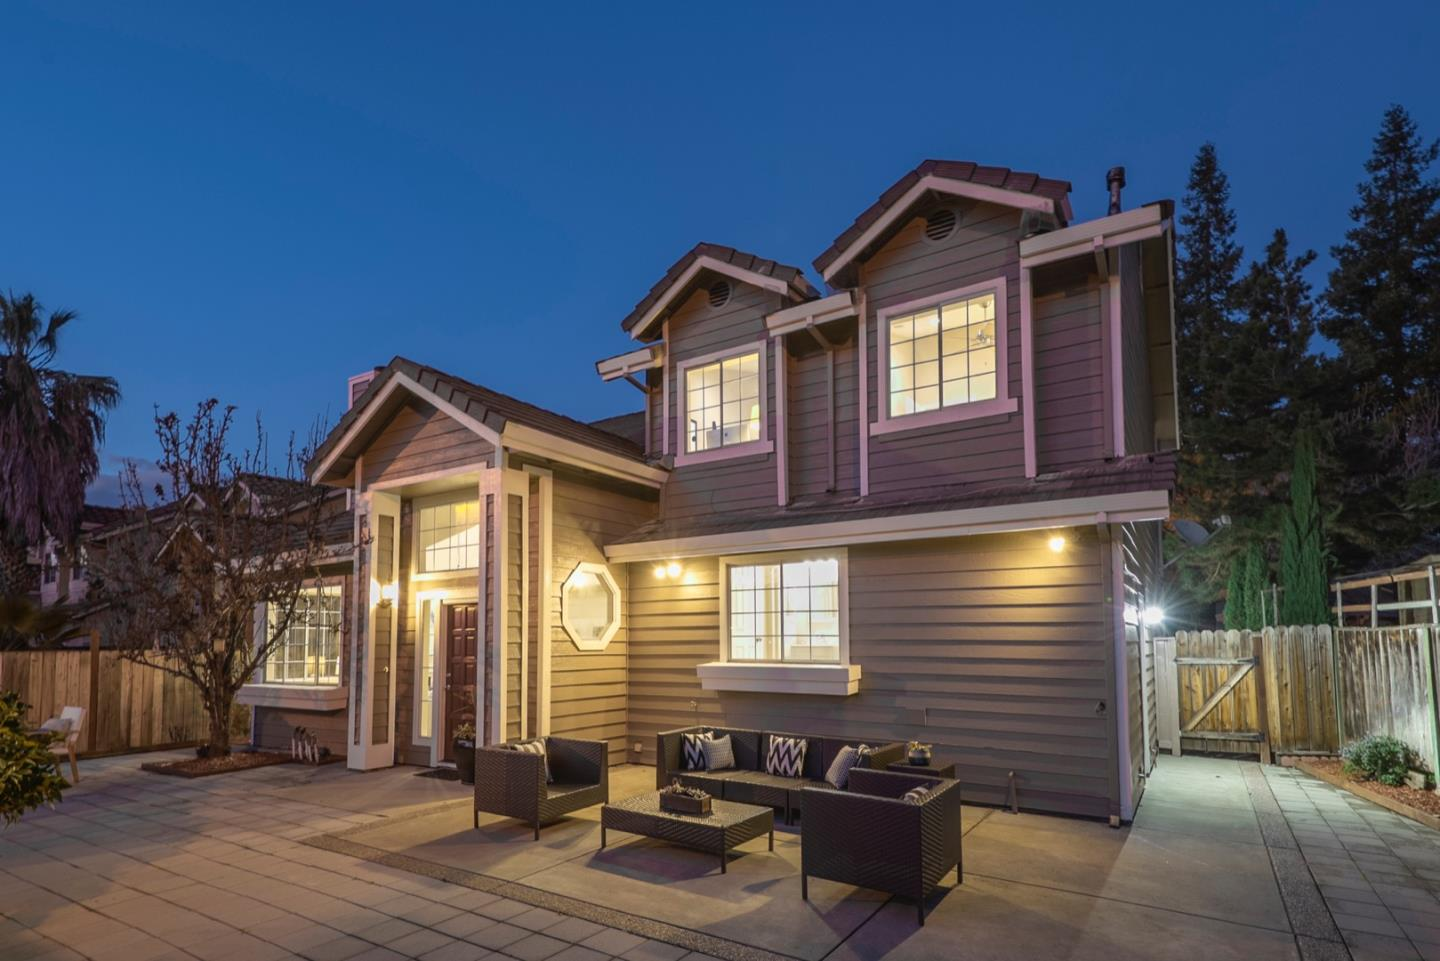 Detail Gallery Image 1 of 1 For 1431 Prelude Dr, San Jose, CA, 95131 - 4 Beds | 2/1 Baths